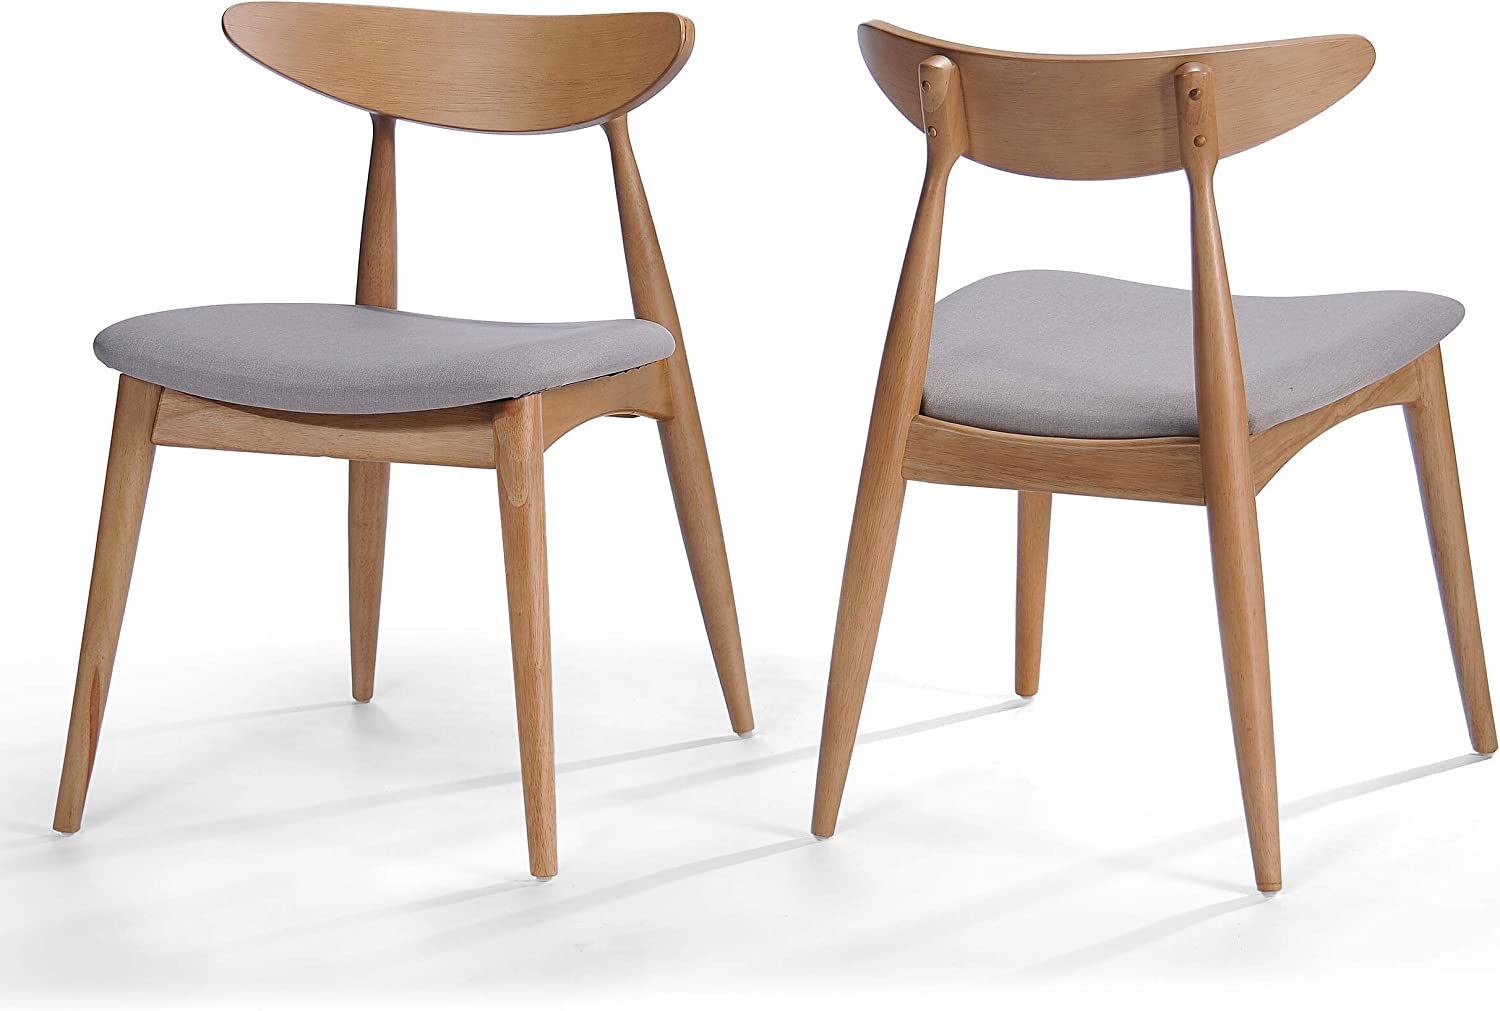 Christopher Knight Home Issaic Light Grey Fabric with Oak Finish Dining Chairs Set of 2